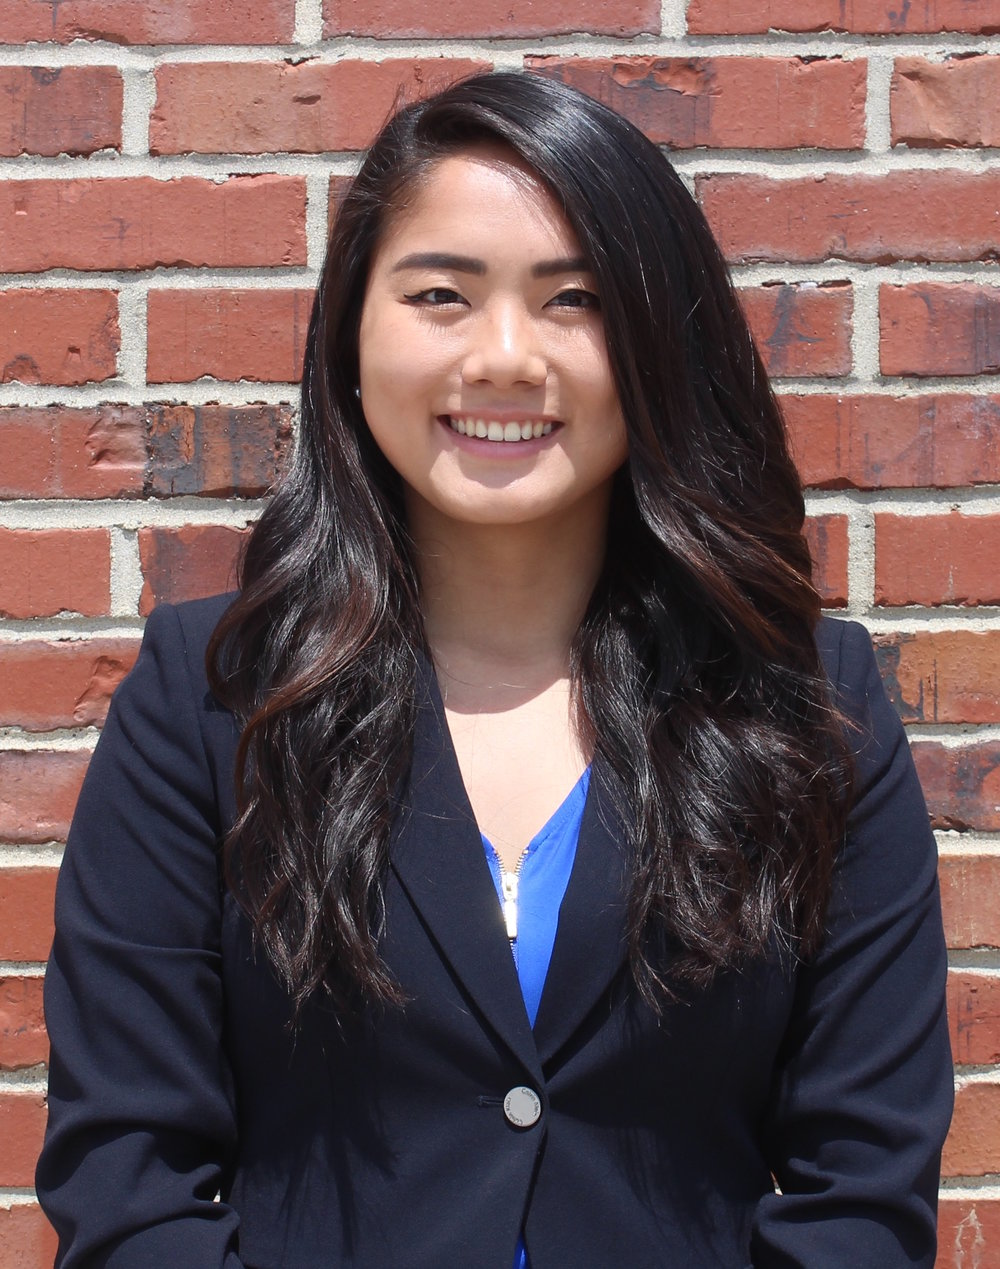 Our Director of Reception this year is Jess Chang. She is currently a senior in the School of Hospitality Business and has been involved with Les Gourmet for the past 3 years. She is also an official Tour guide for Michigan State and is an active member of the Michigan State Equestrian Team. This past summer she was fortunately enough to work for The Westin Jersey City in New Jersey as a Human Resources Intern, and through her internship she was able to gain knowledge regarding event planning and communication skill. Jess is thrilled and excited for what this amazing Les Gourmets board will bring this year!